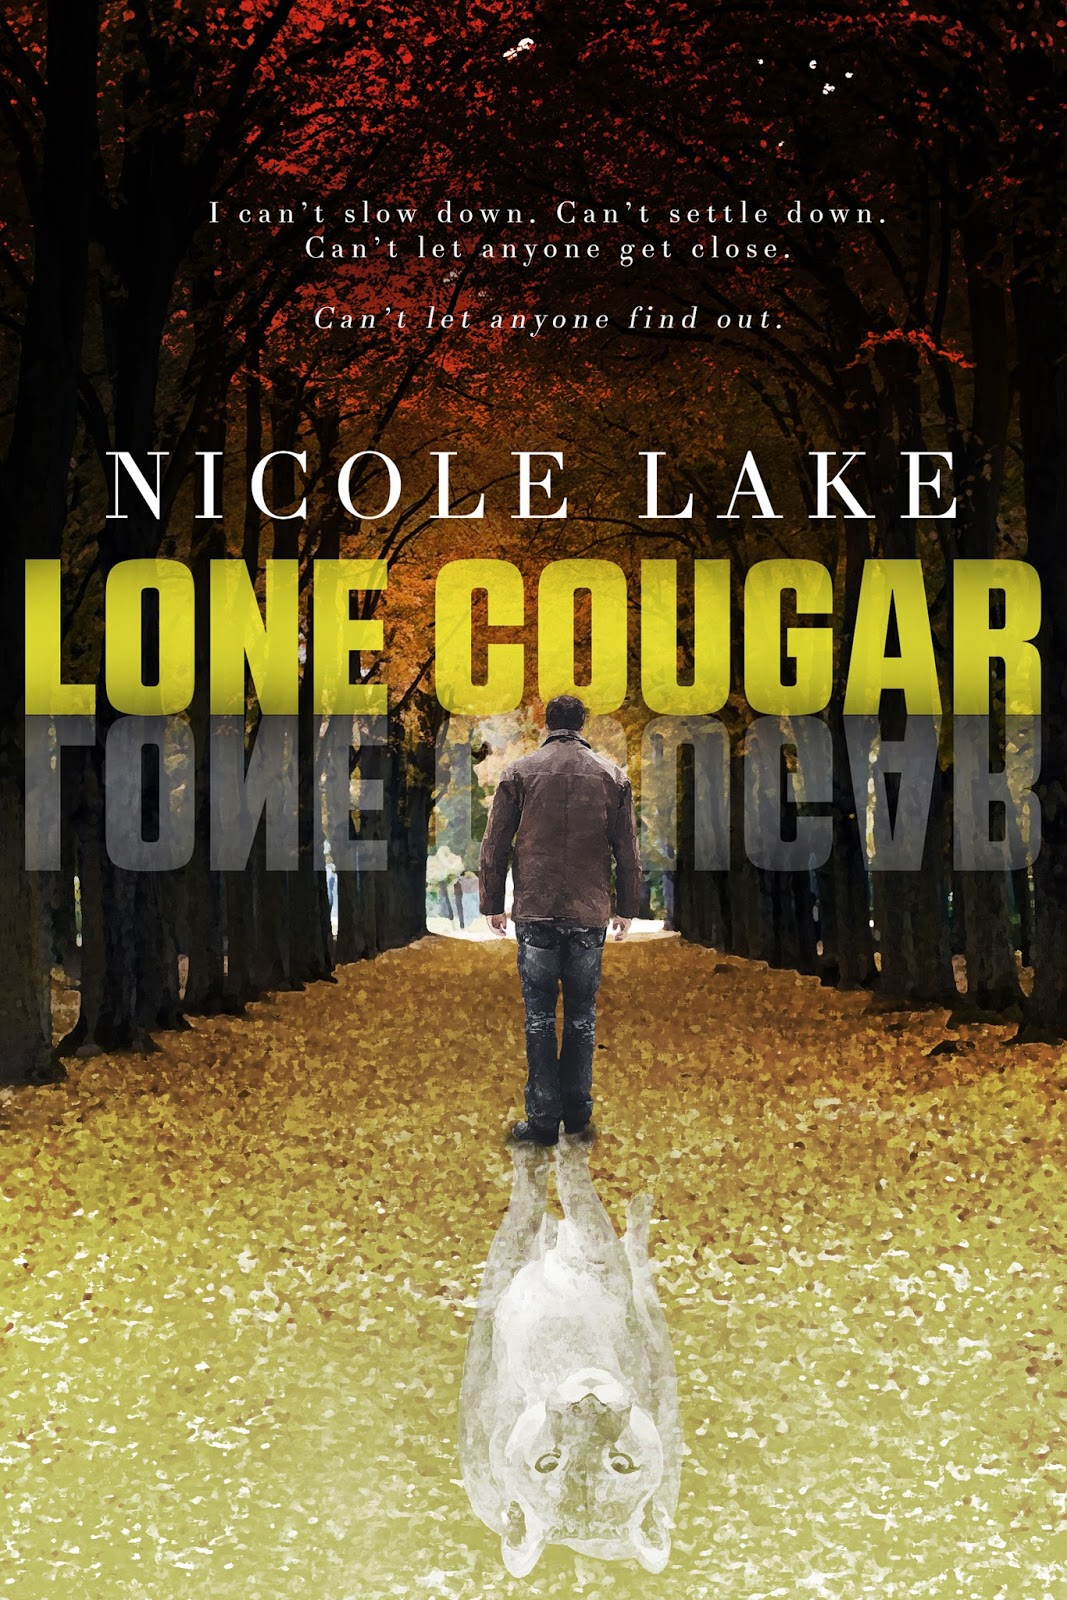 "Lone Cougar cover: A man wearing a coat, jeans, and boots stares into an autumn forest. The leaves are changing colors, and the forest floor is covered with fallen leaves. Behind him, his shadow forms the image of a cougar. Above the man's head is the book title, the author's name, and the tag line ""I can't slow down. Can't settle down. Can't let anyone get close. Can't let anyone find out."""